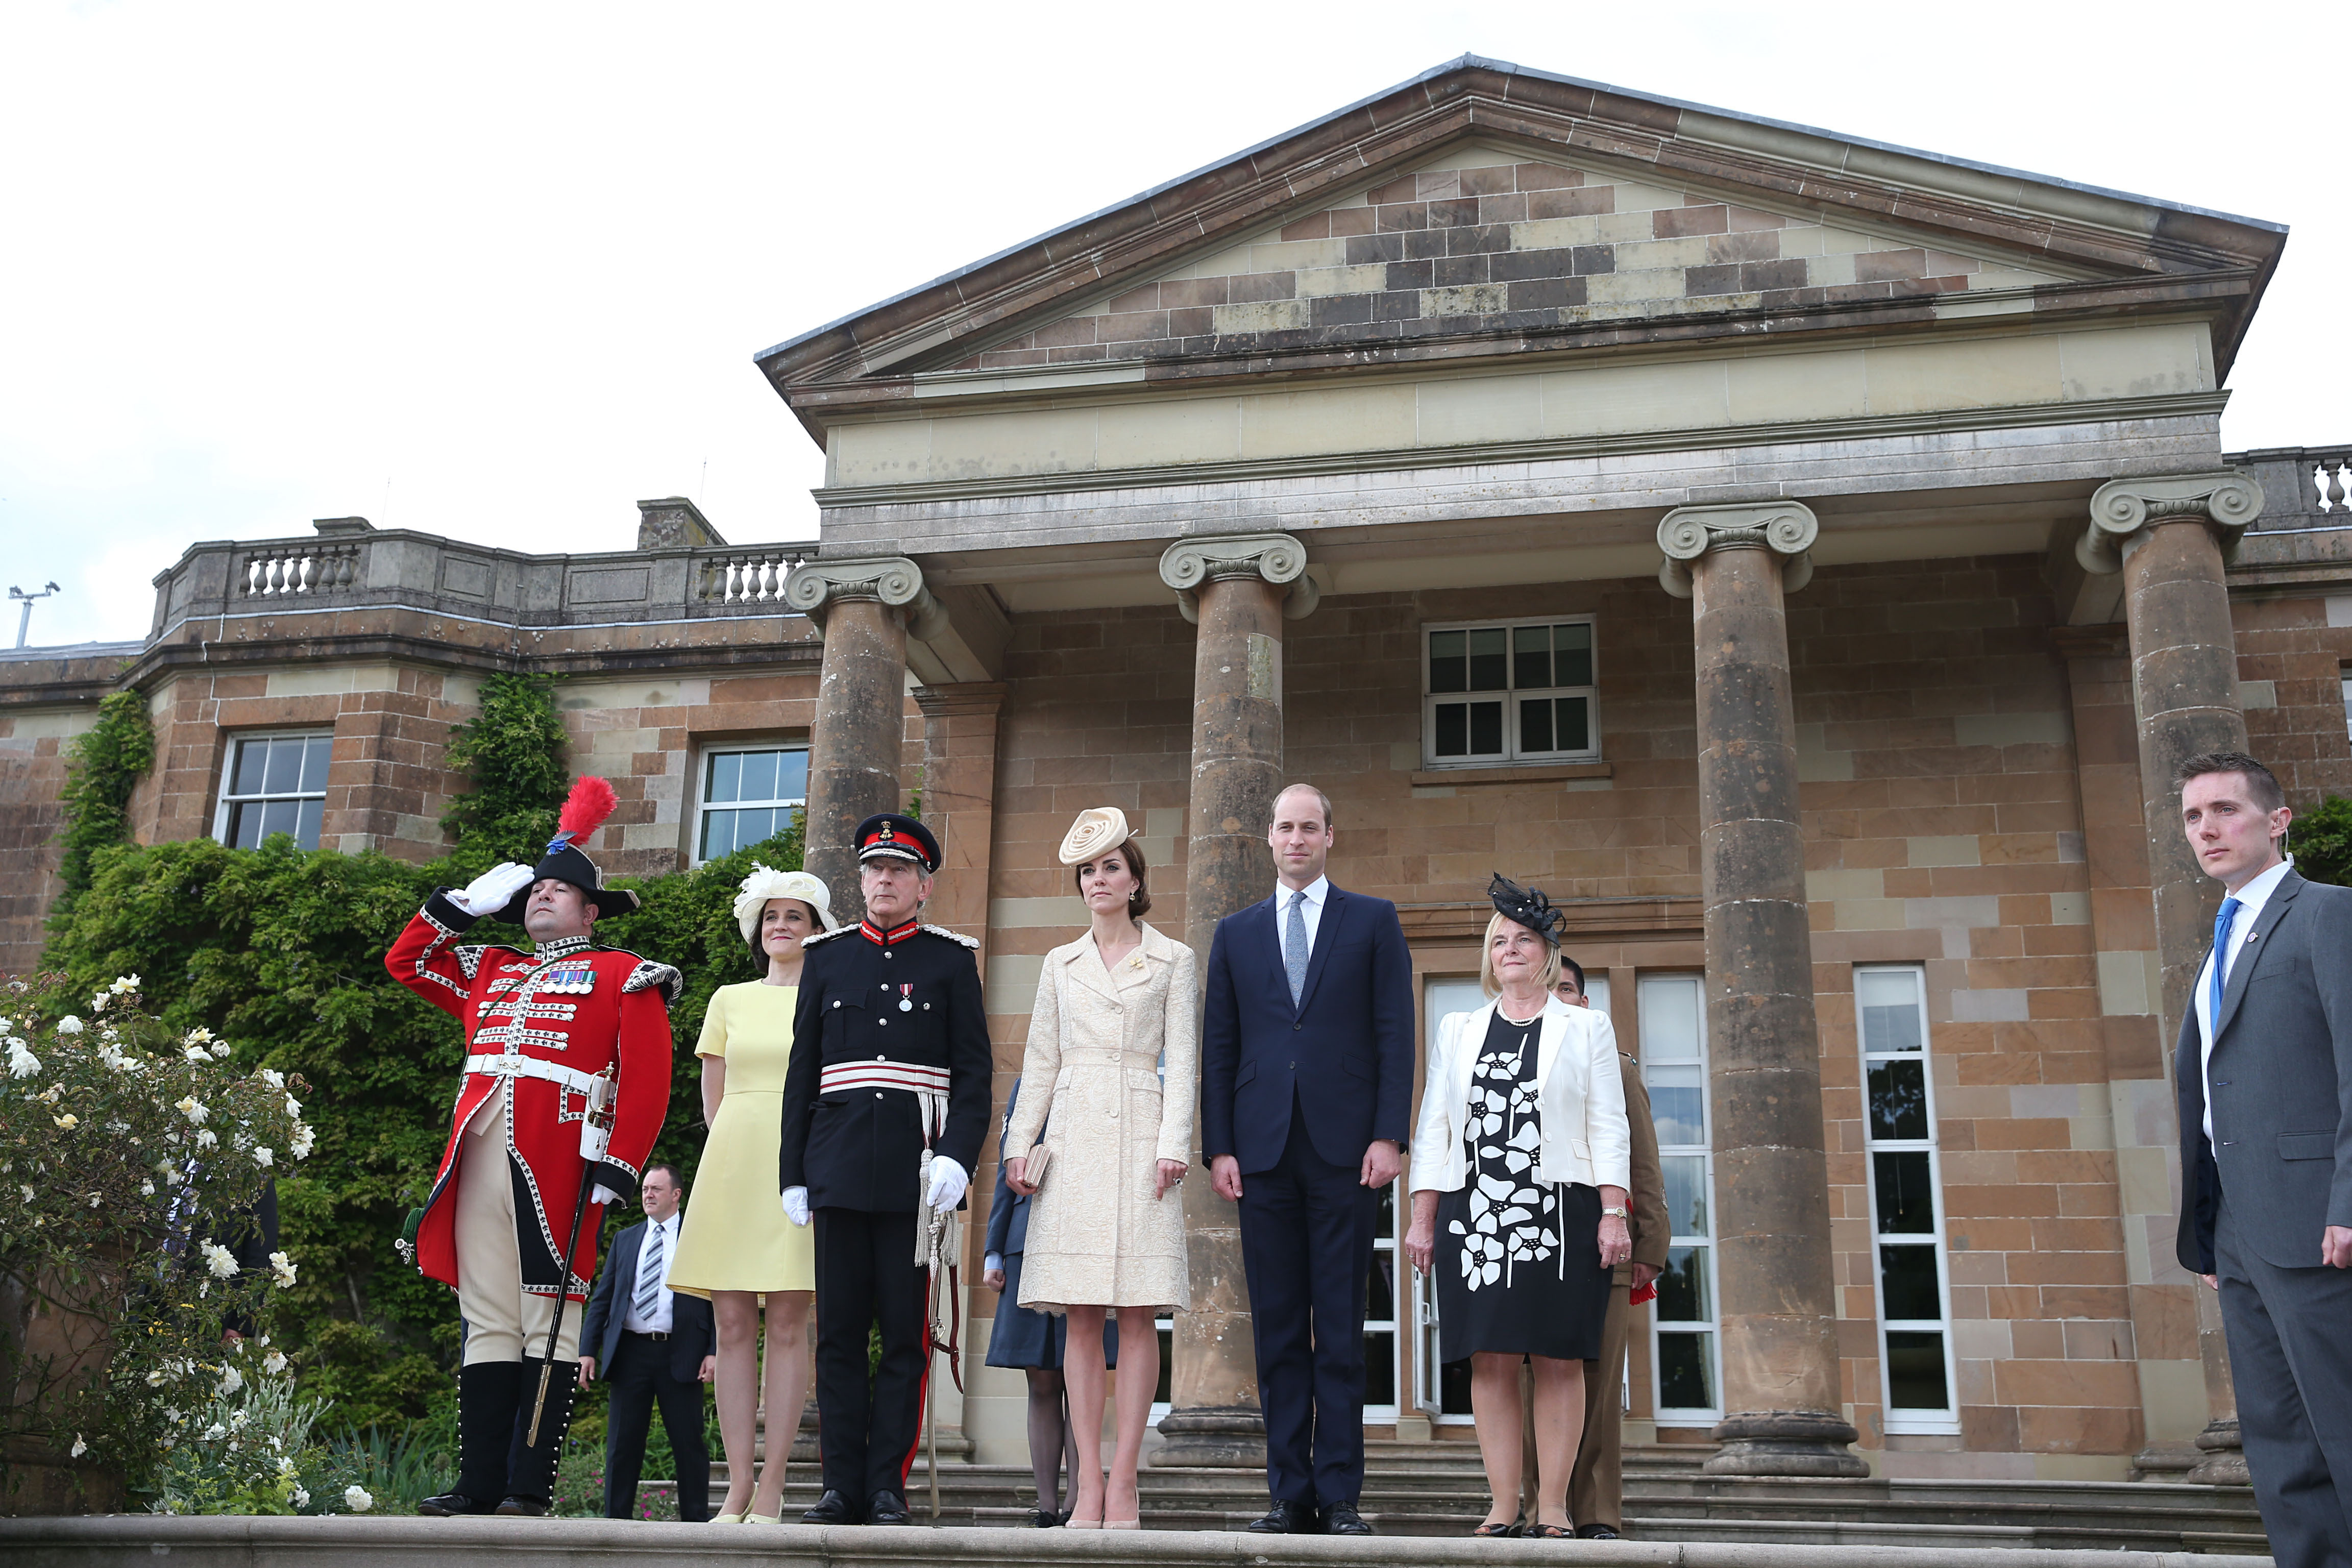 The Duke and Duchess of Cambridge attend a Garden Party at Hillsborough Castle